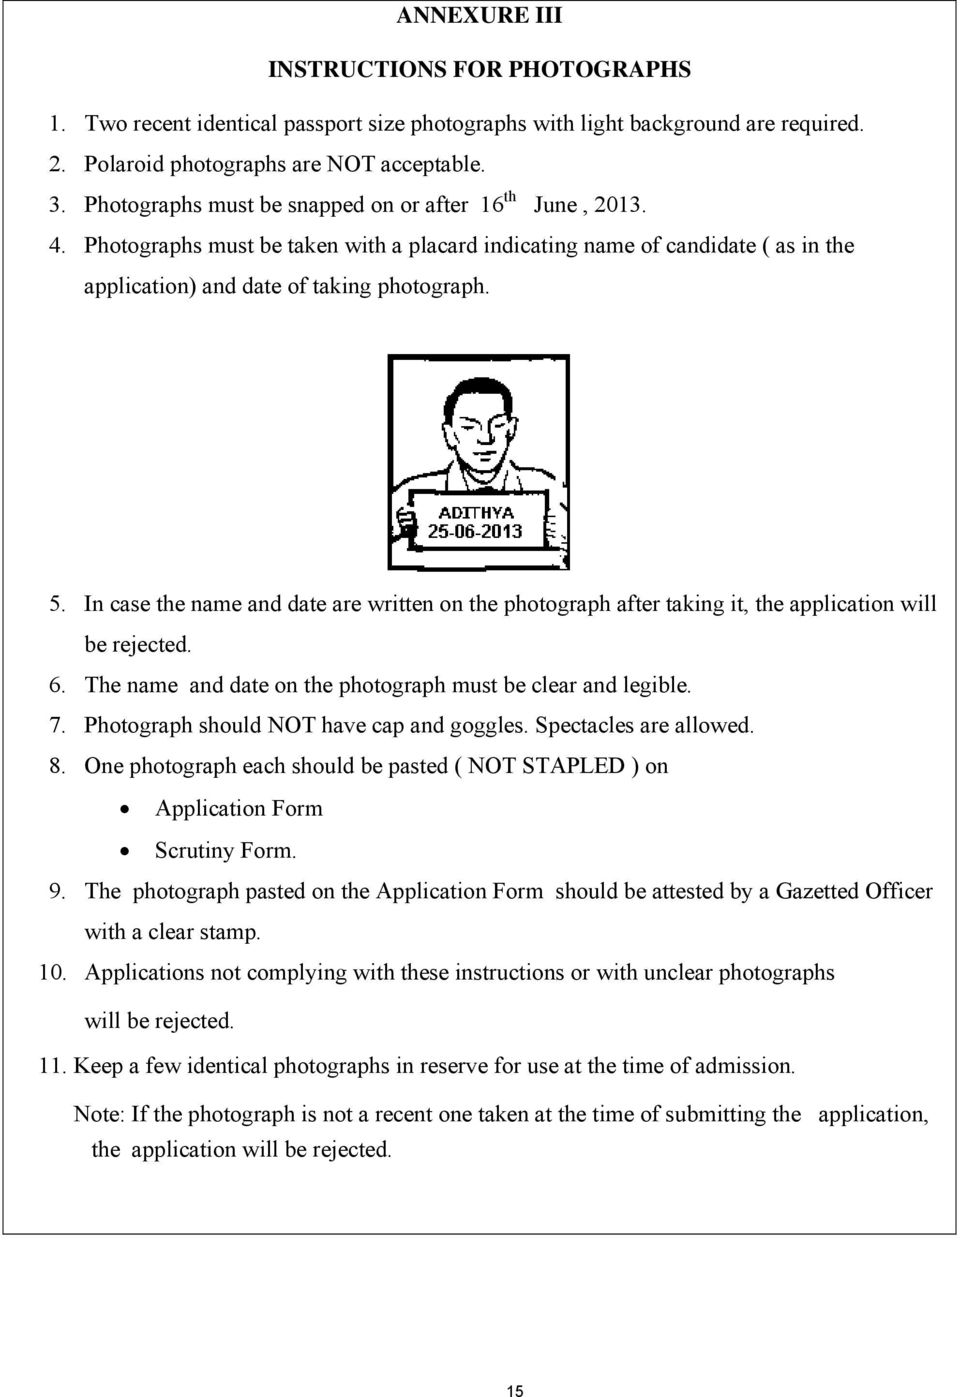 In case the name and date are written on the photograph after taking it, the application will be rejected. 6. The name and date on the photograph must be clear and legible. 7.